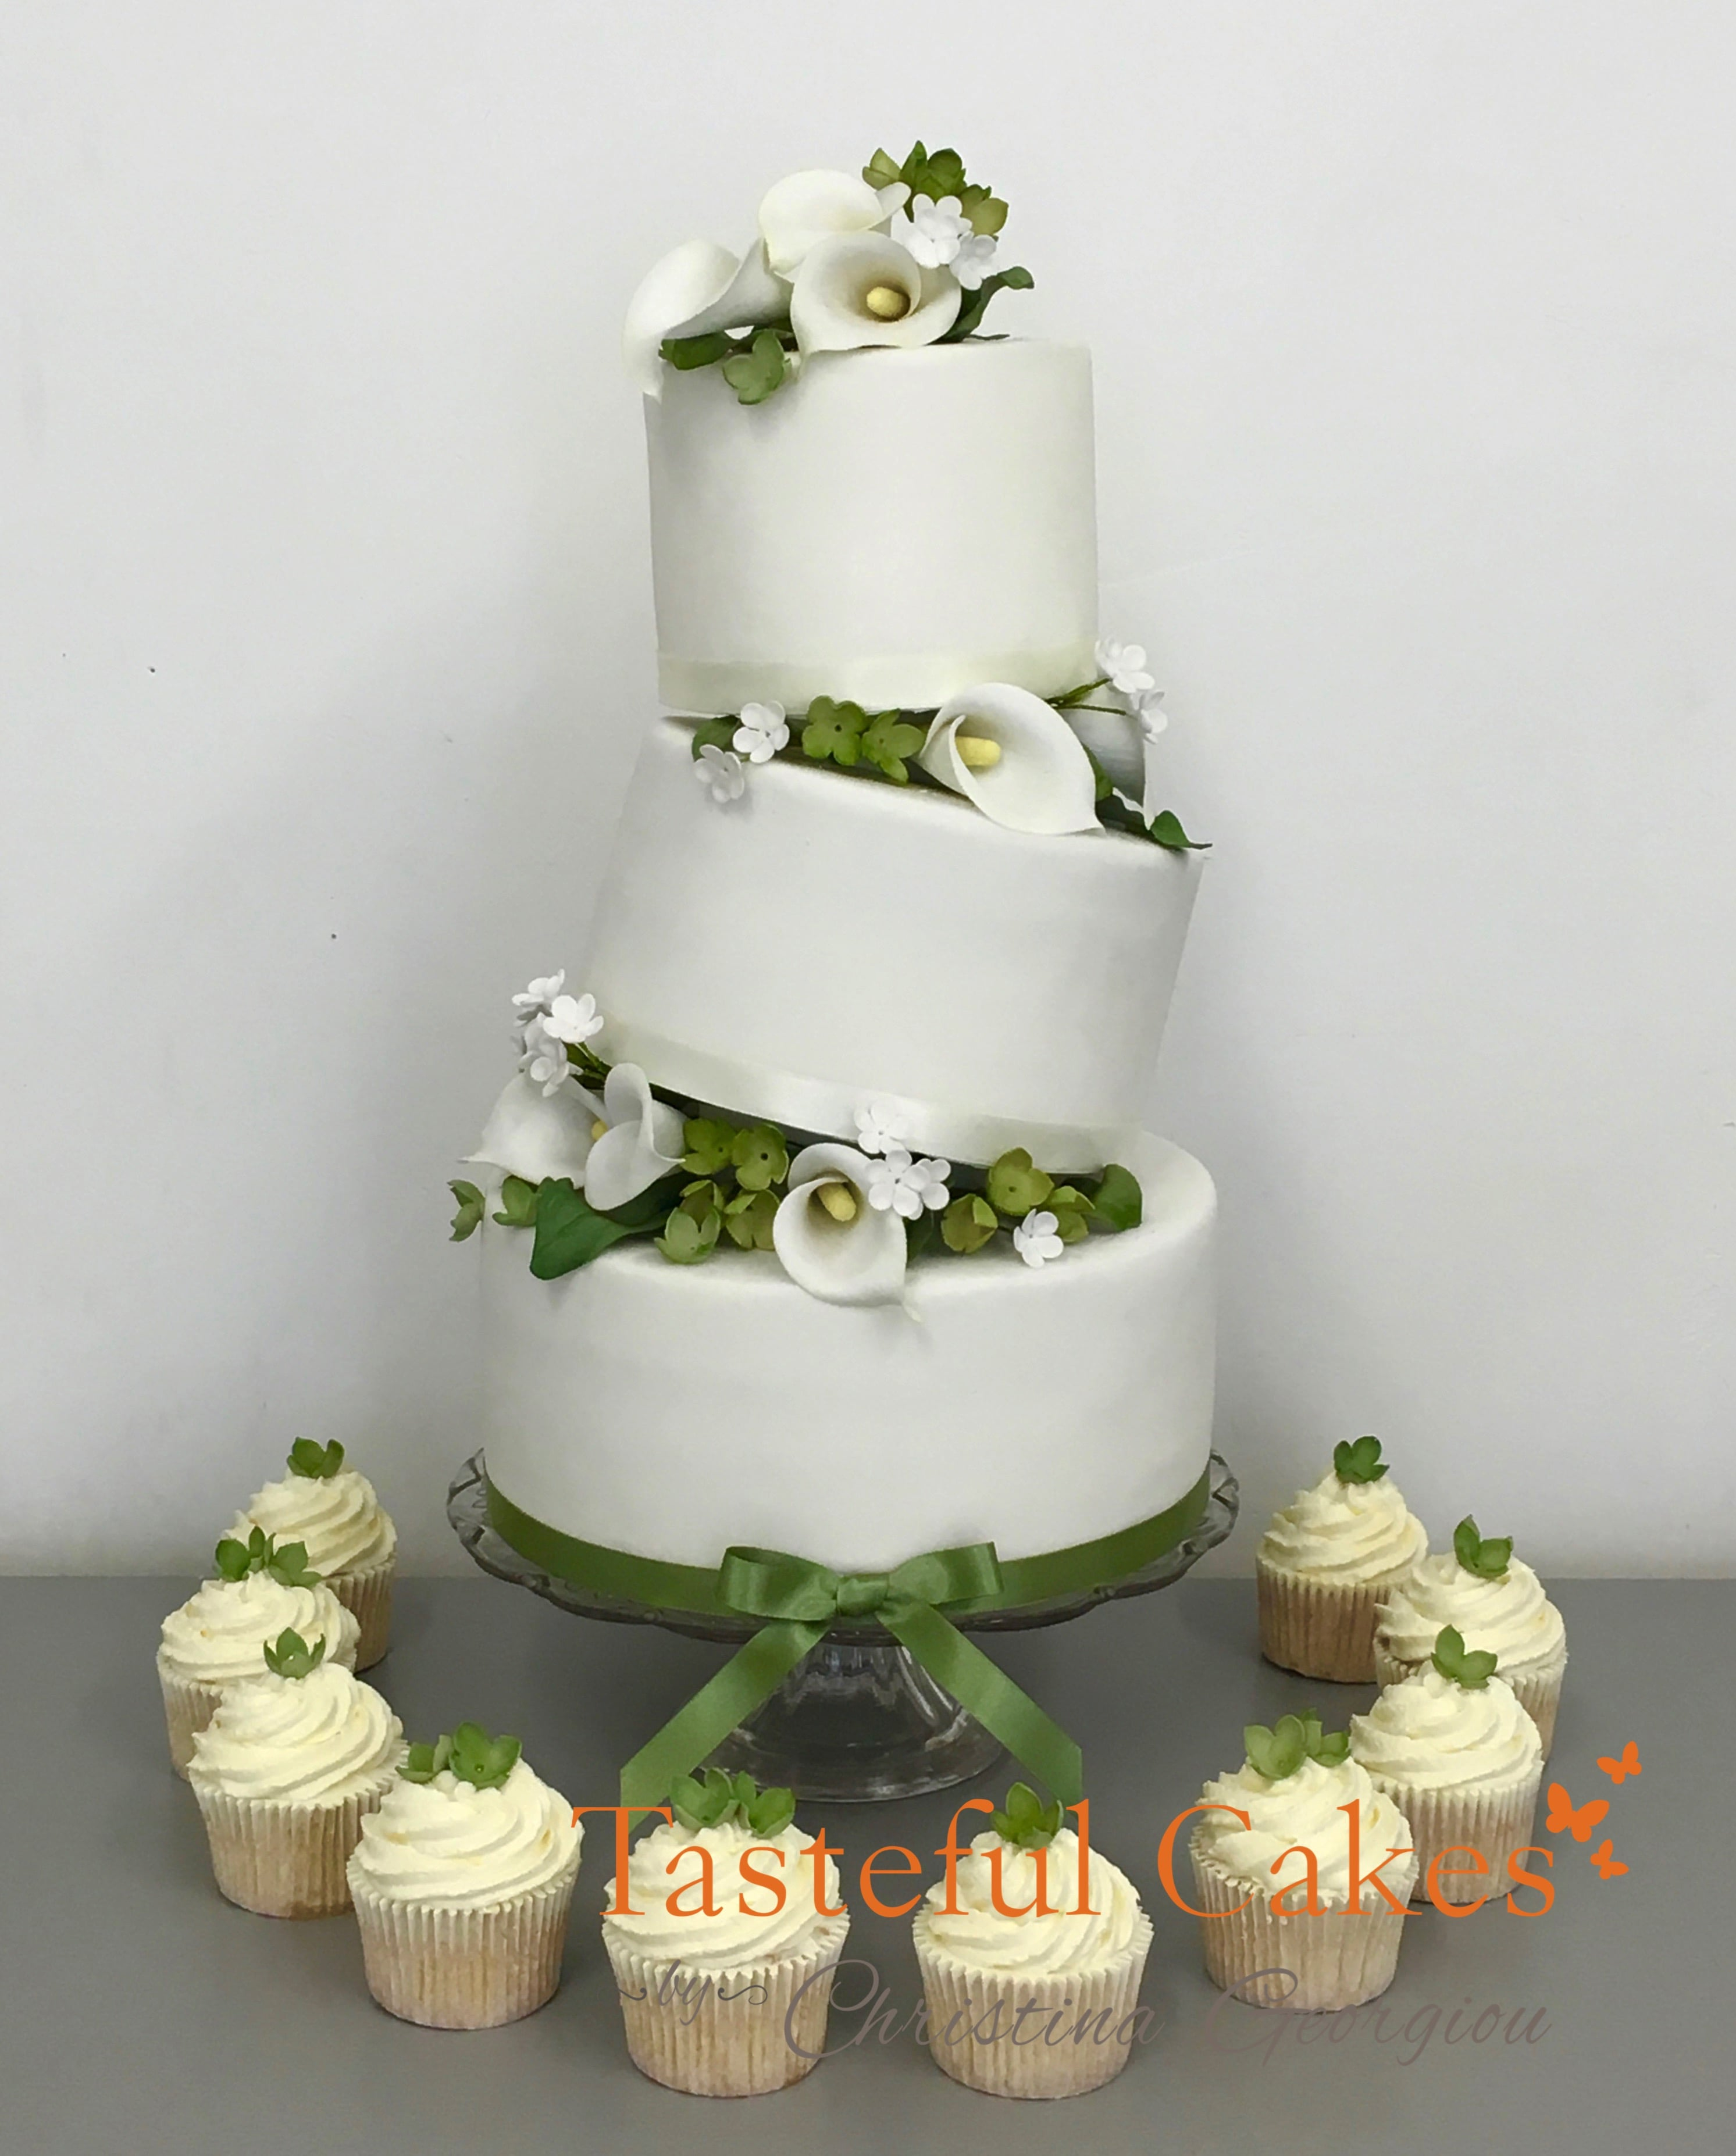 Tasteful Cakes By Christina Georgiou Floral Sage Green